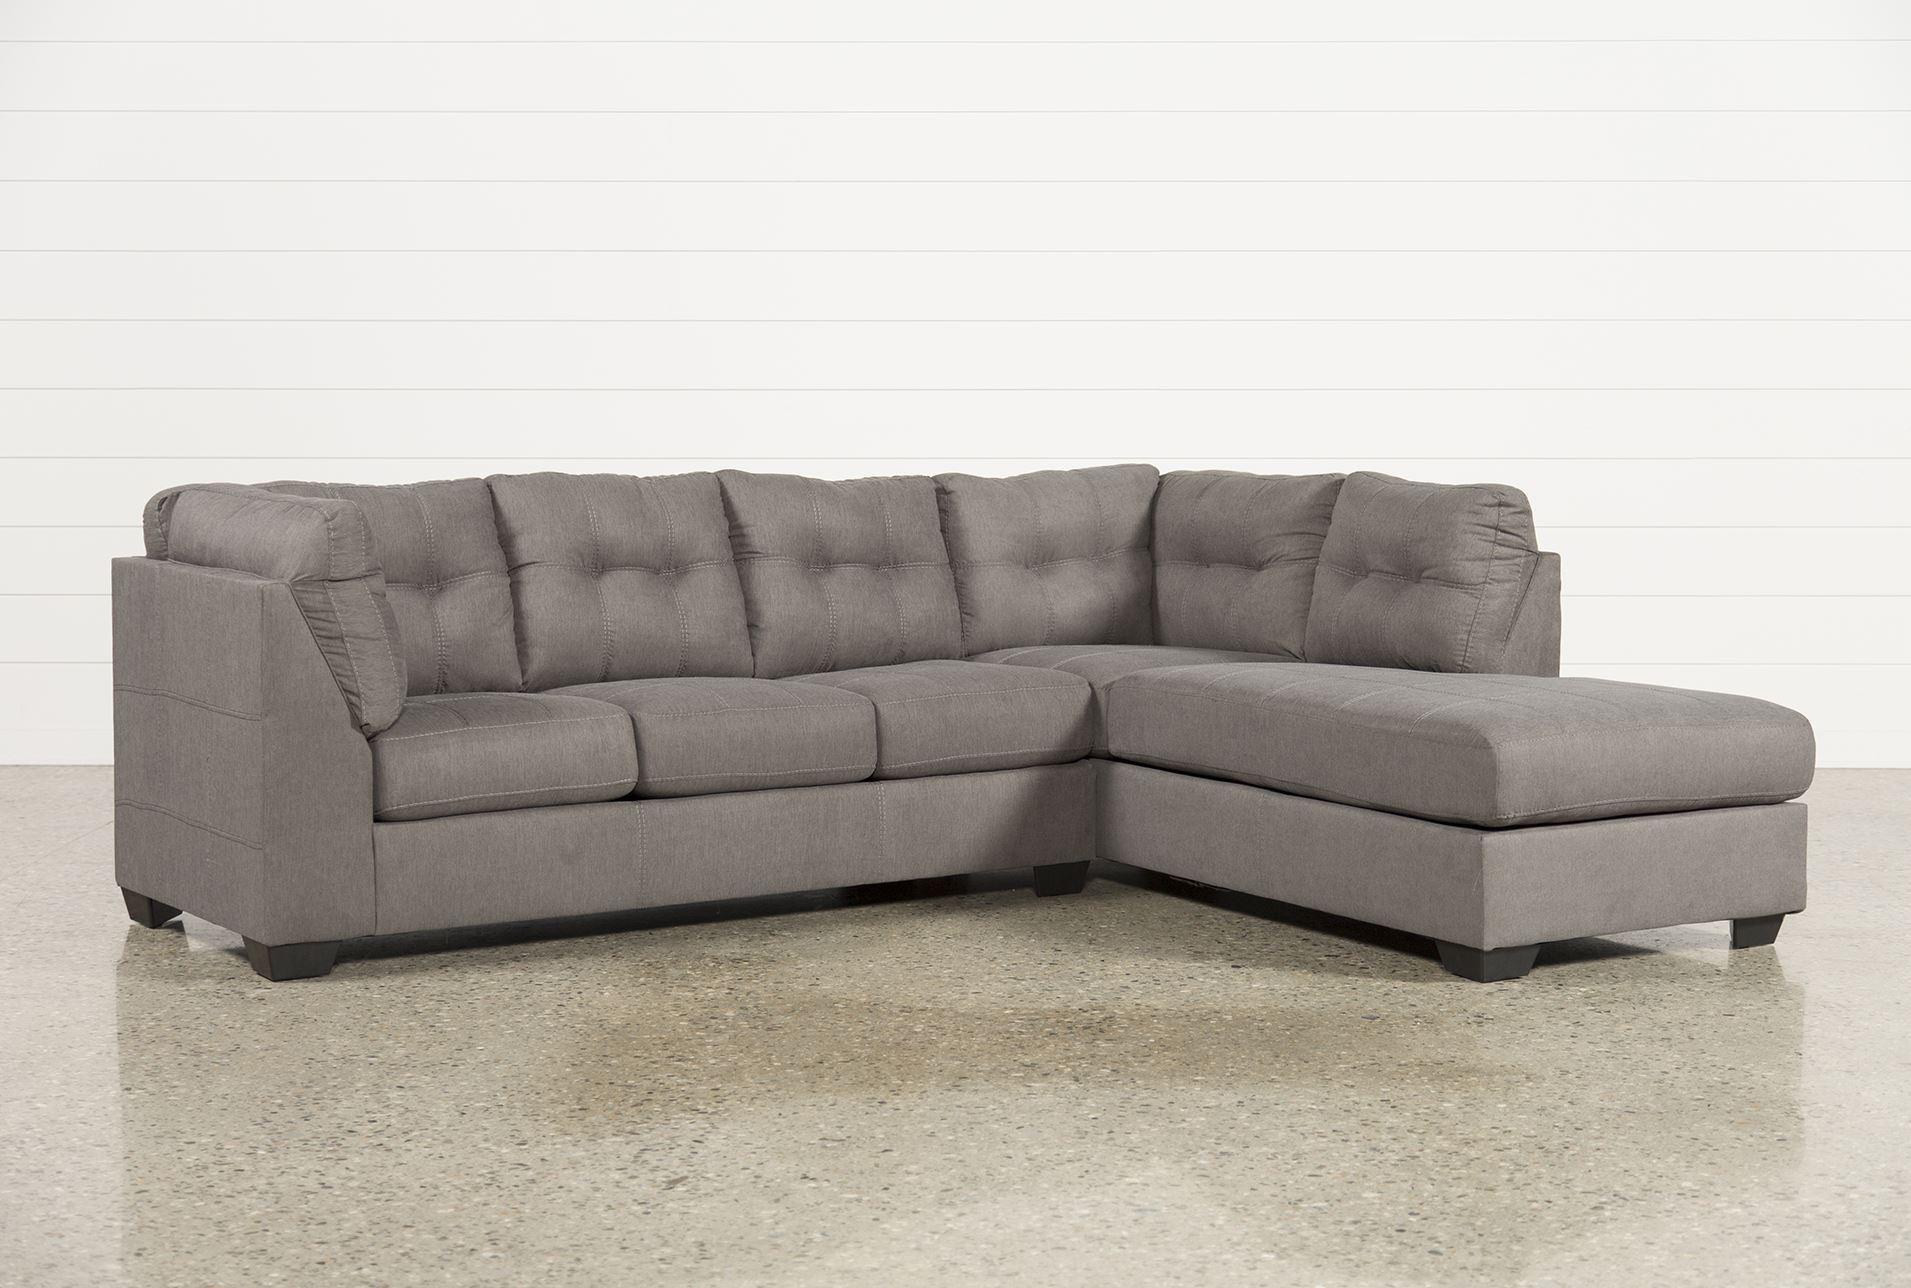 Maier charcoal 2 piece sectional w sleeper right facing for 2 piece sectional with chaise lounge